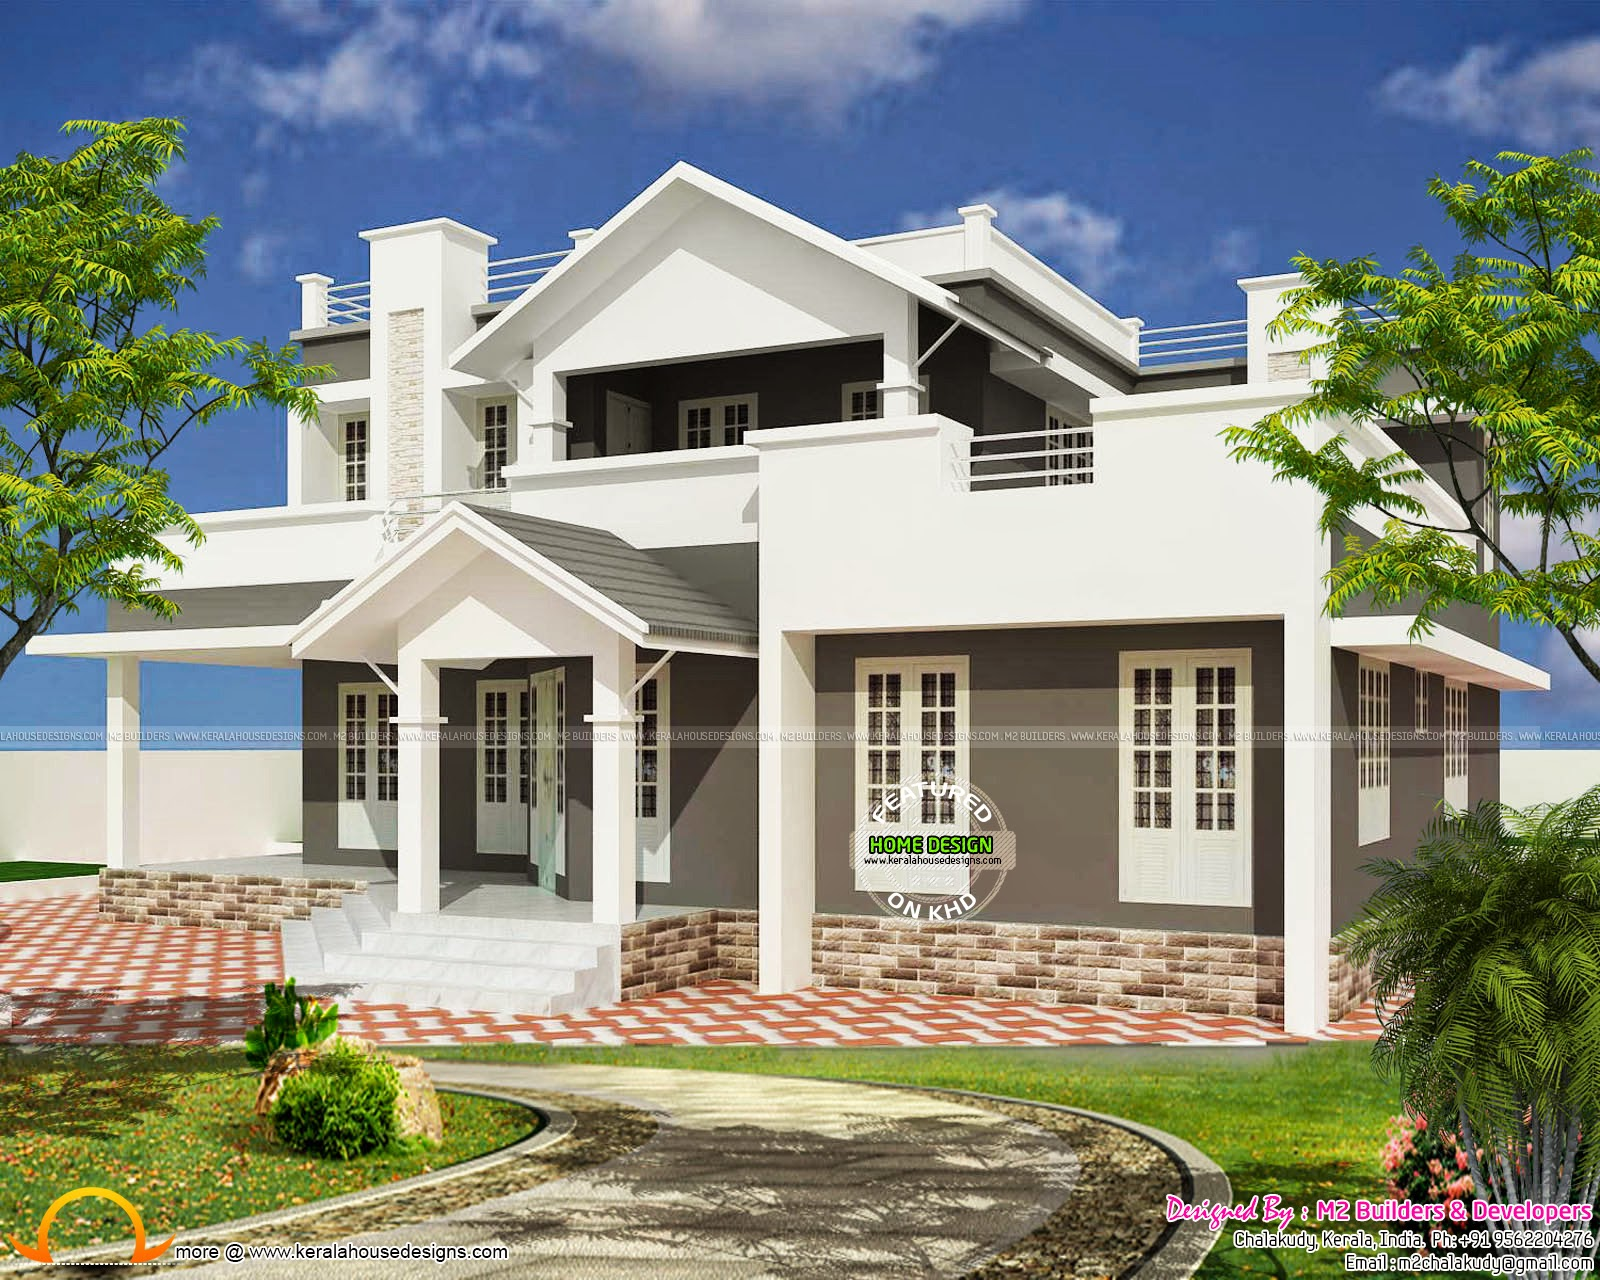 House design by m2 builders in chalakudy kerala home House design builder